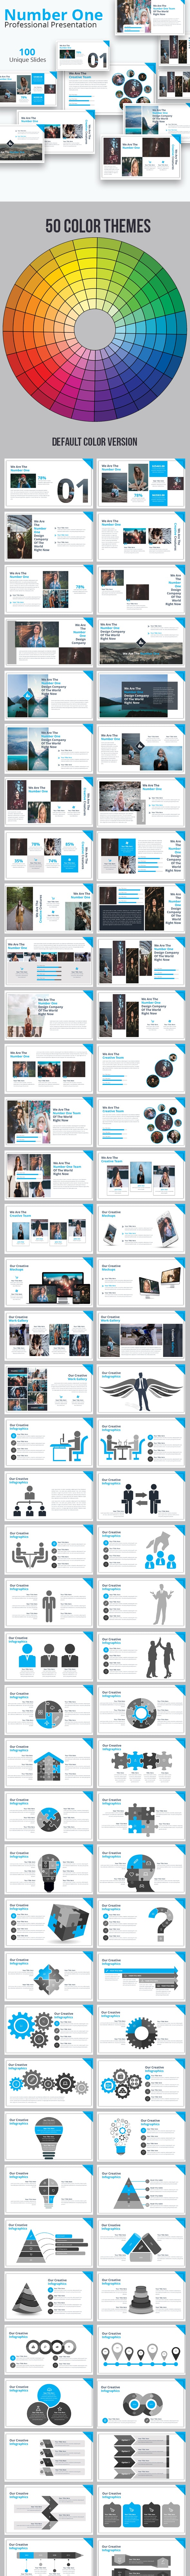 Number One Powerpoint Presentation Template - Business PowerPoint Templates